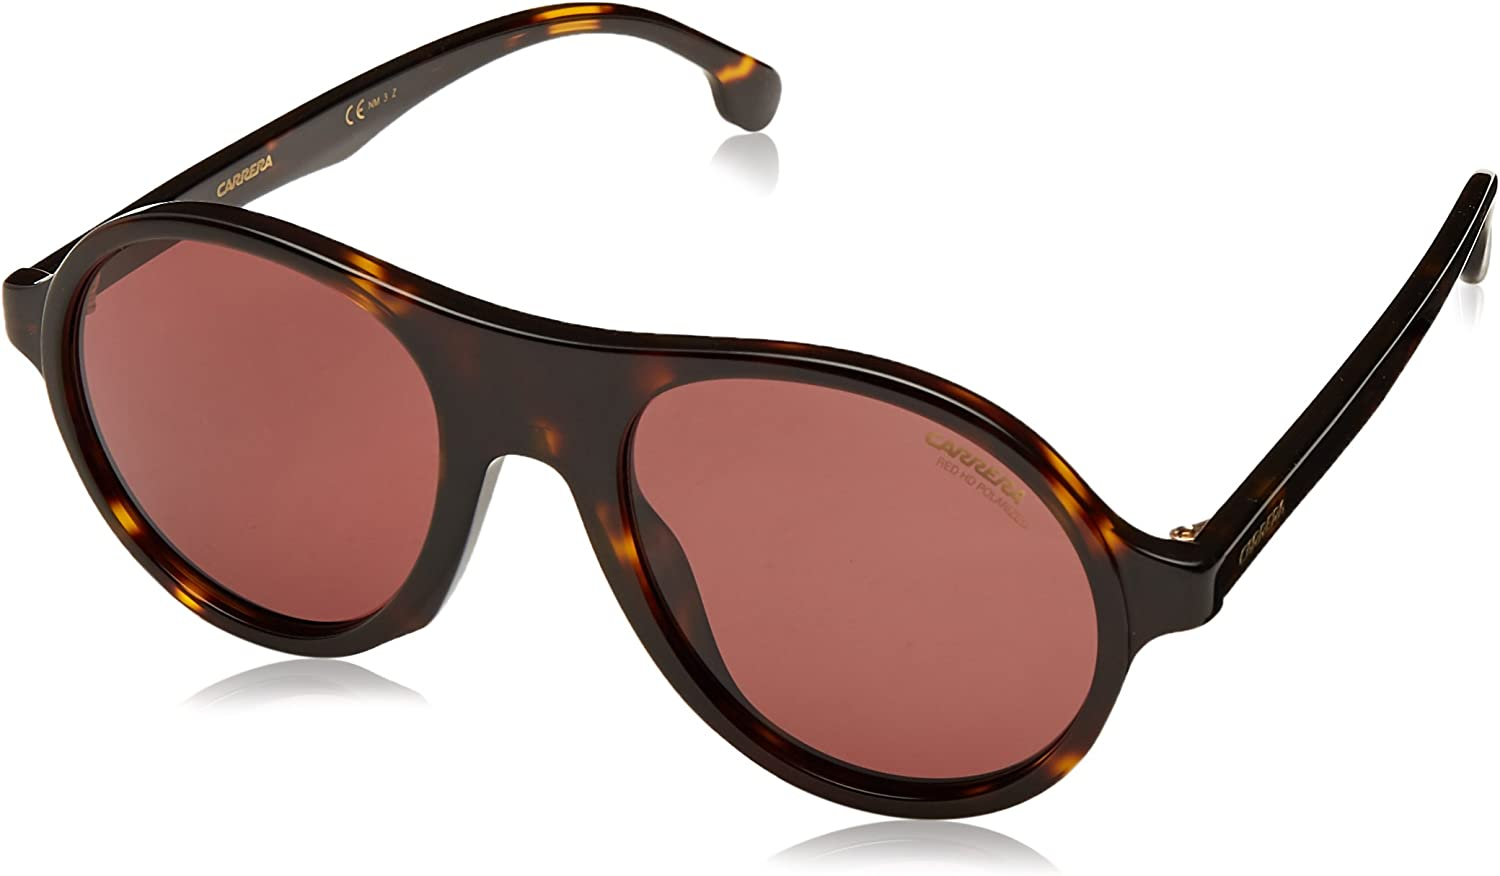 Carrera 142 s Polarized Round Sunglasses DKHAVANA 50 mm